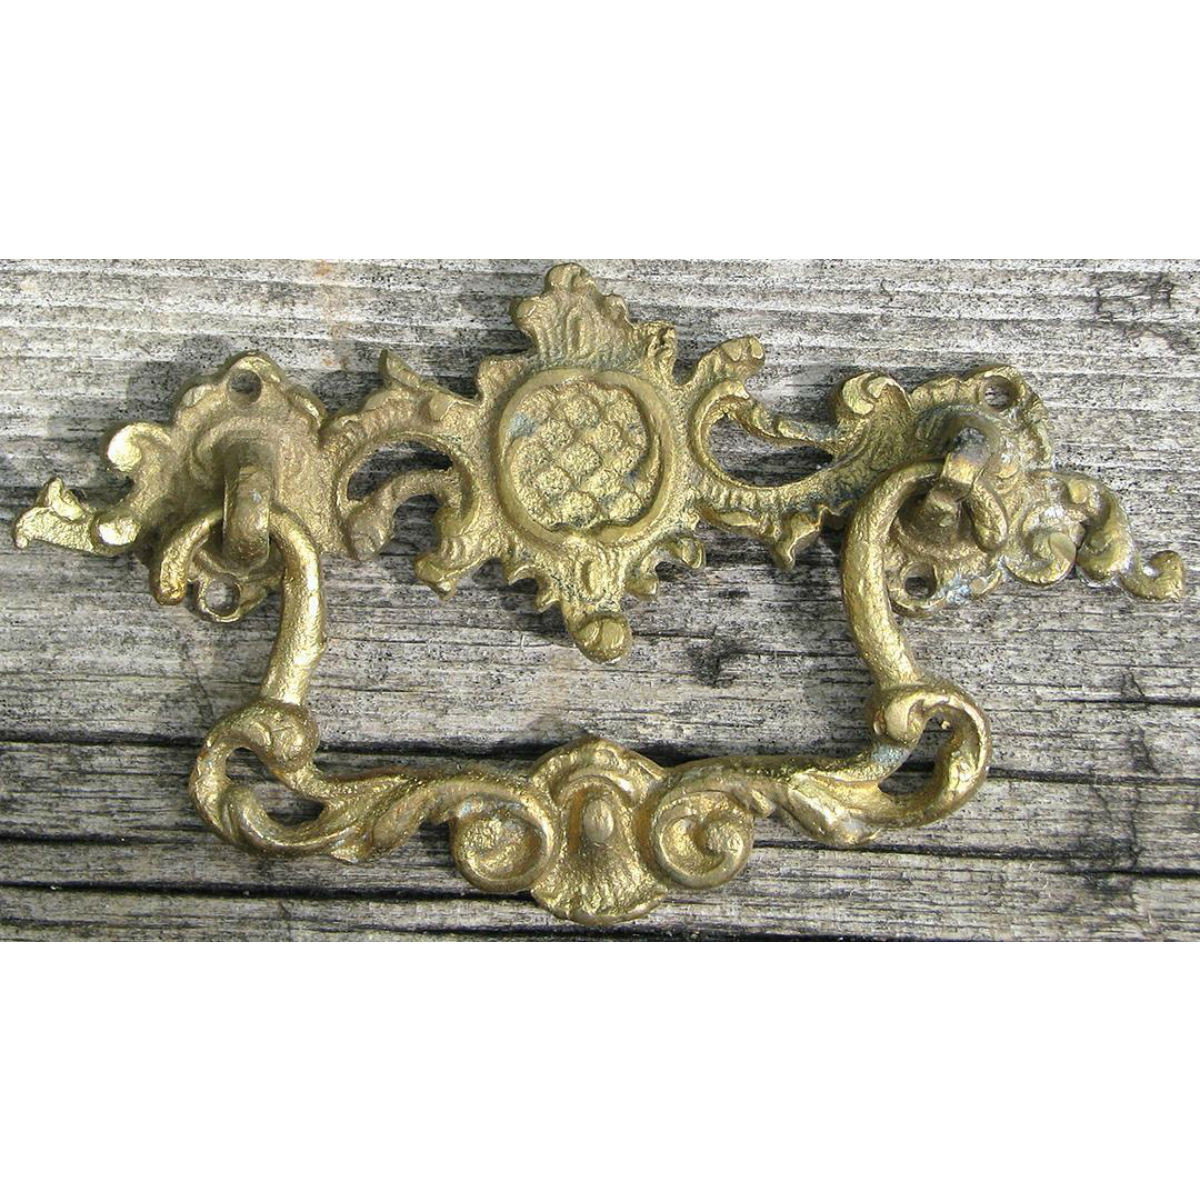 H12067 - Antique Furniture Pull